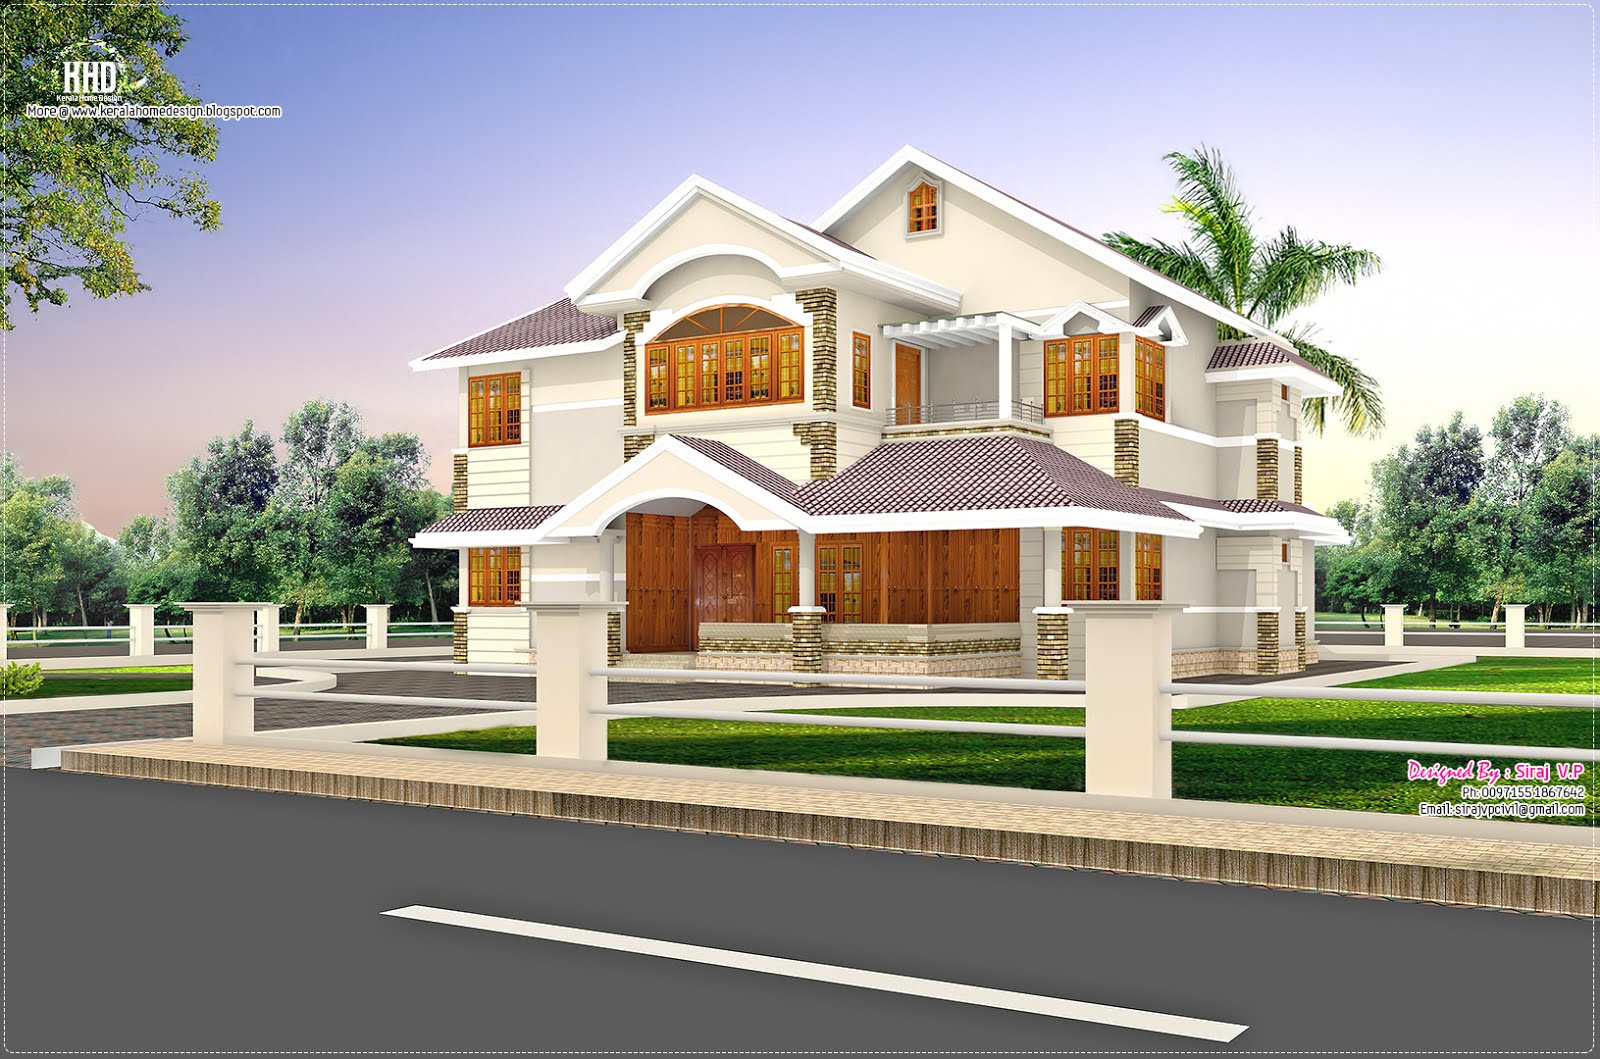 Home design 3d for Villa ideas designs